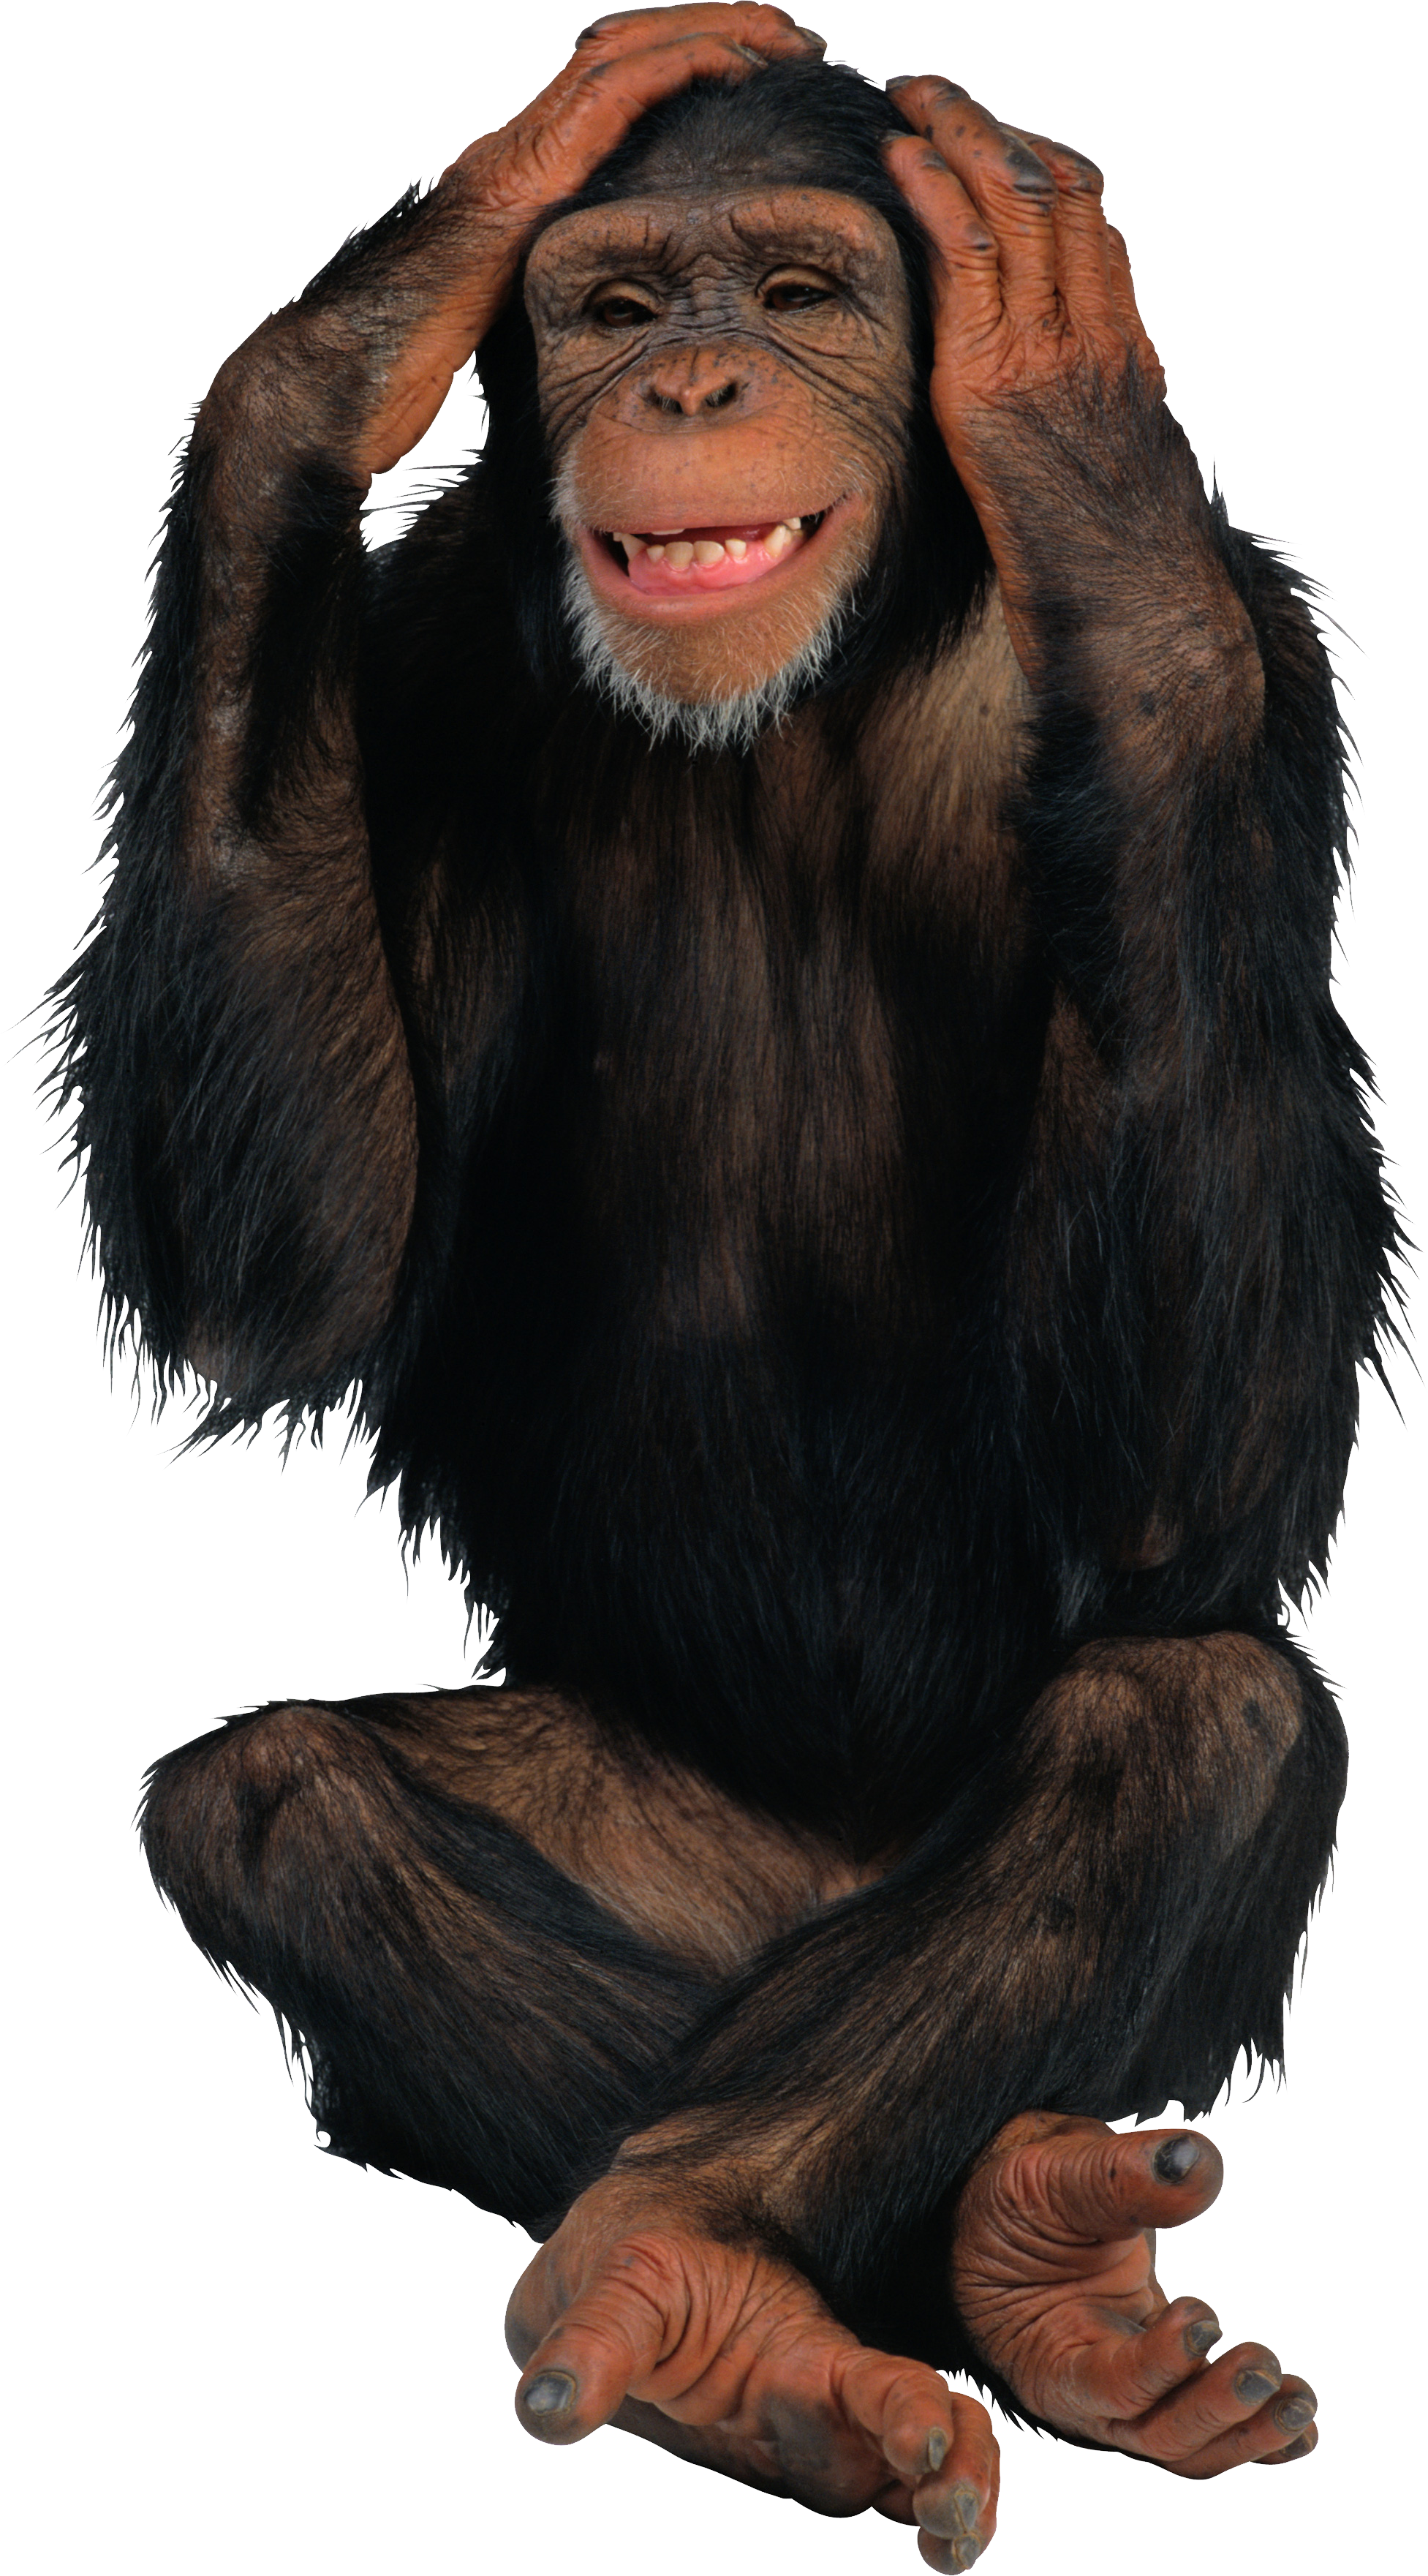 Tooth clipart monkey. Png animal pinterest